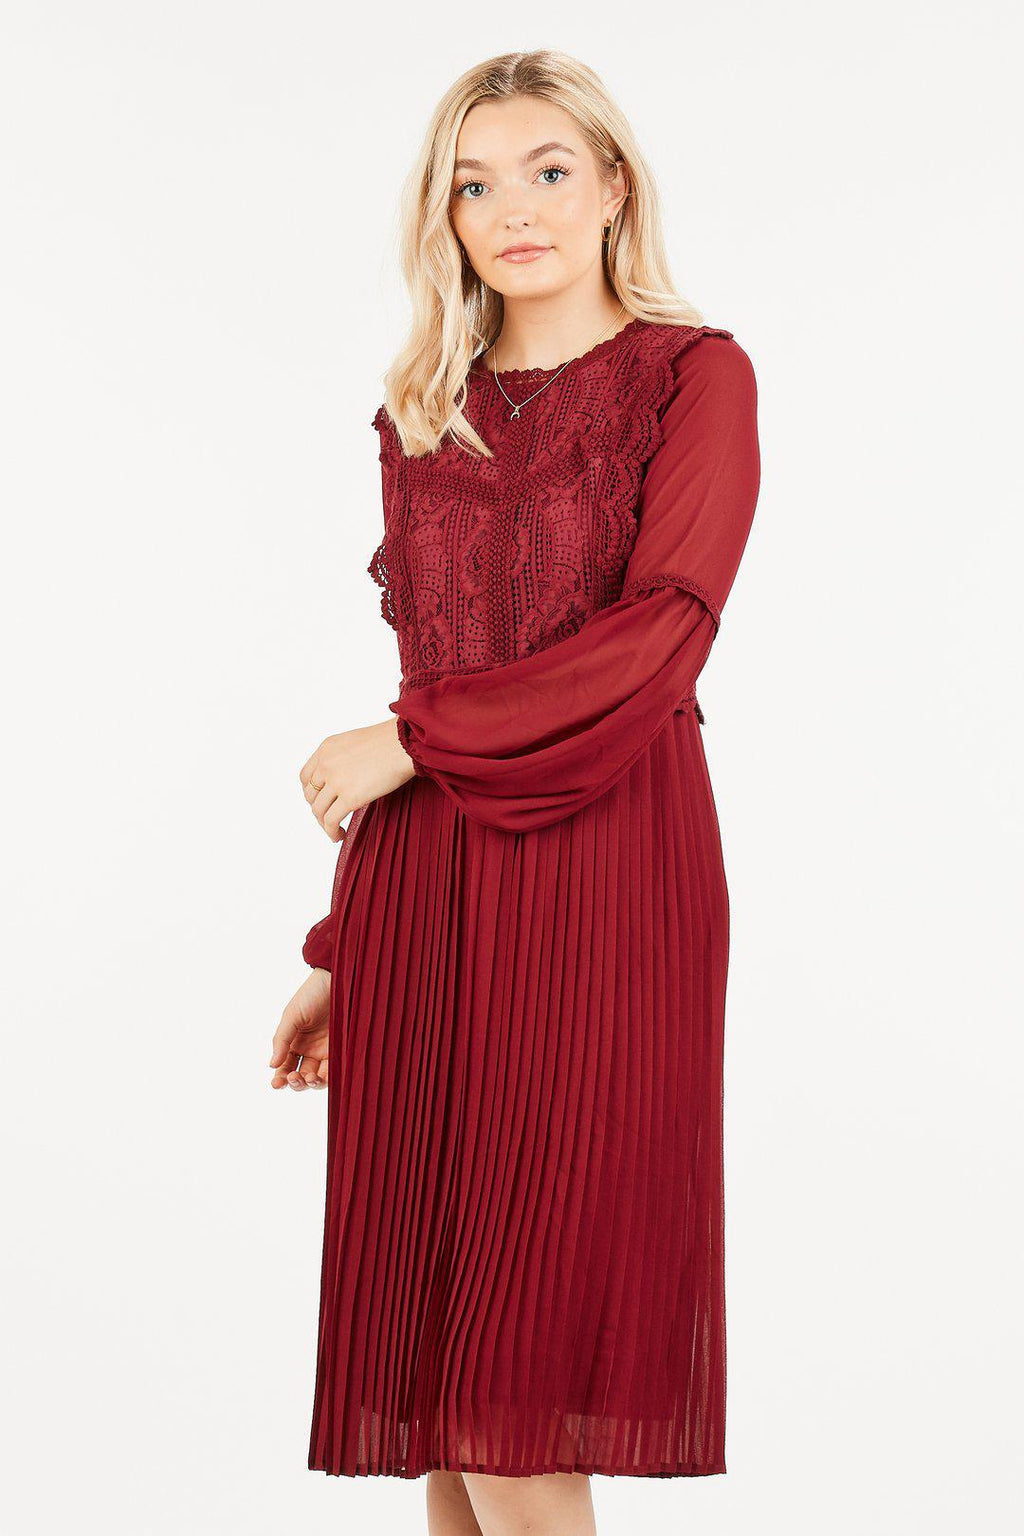 Ophelia Long Sleeve Casual Modest Dress from A Closet Full of Dresses